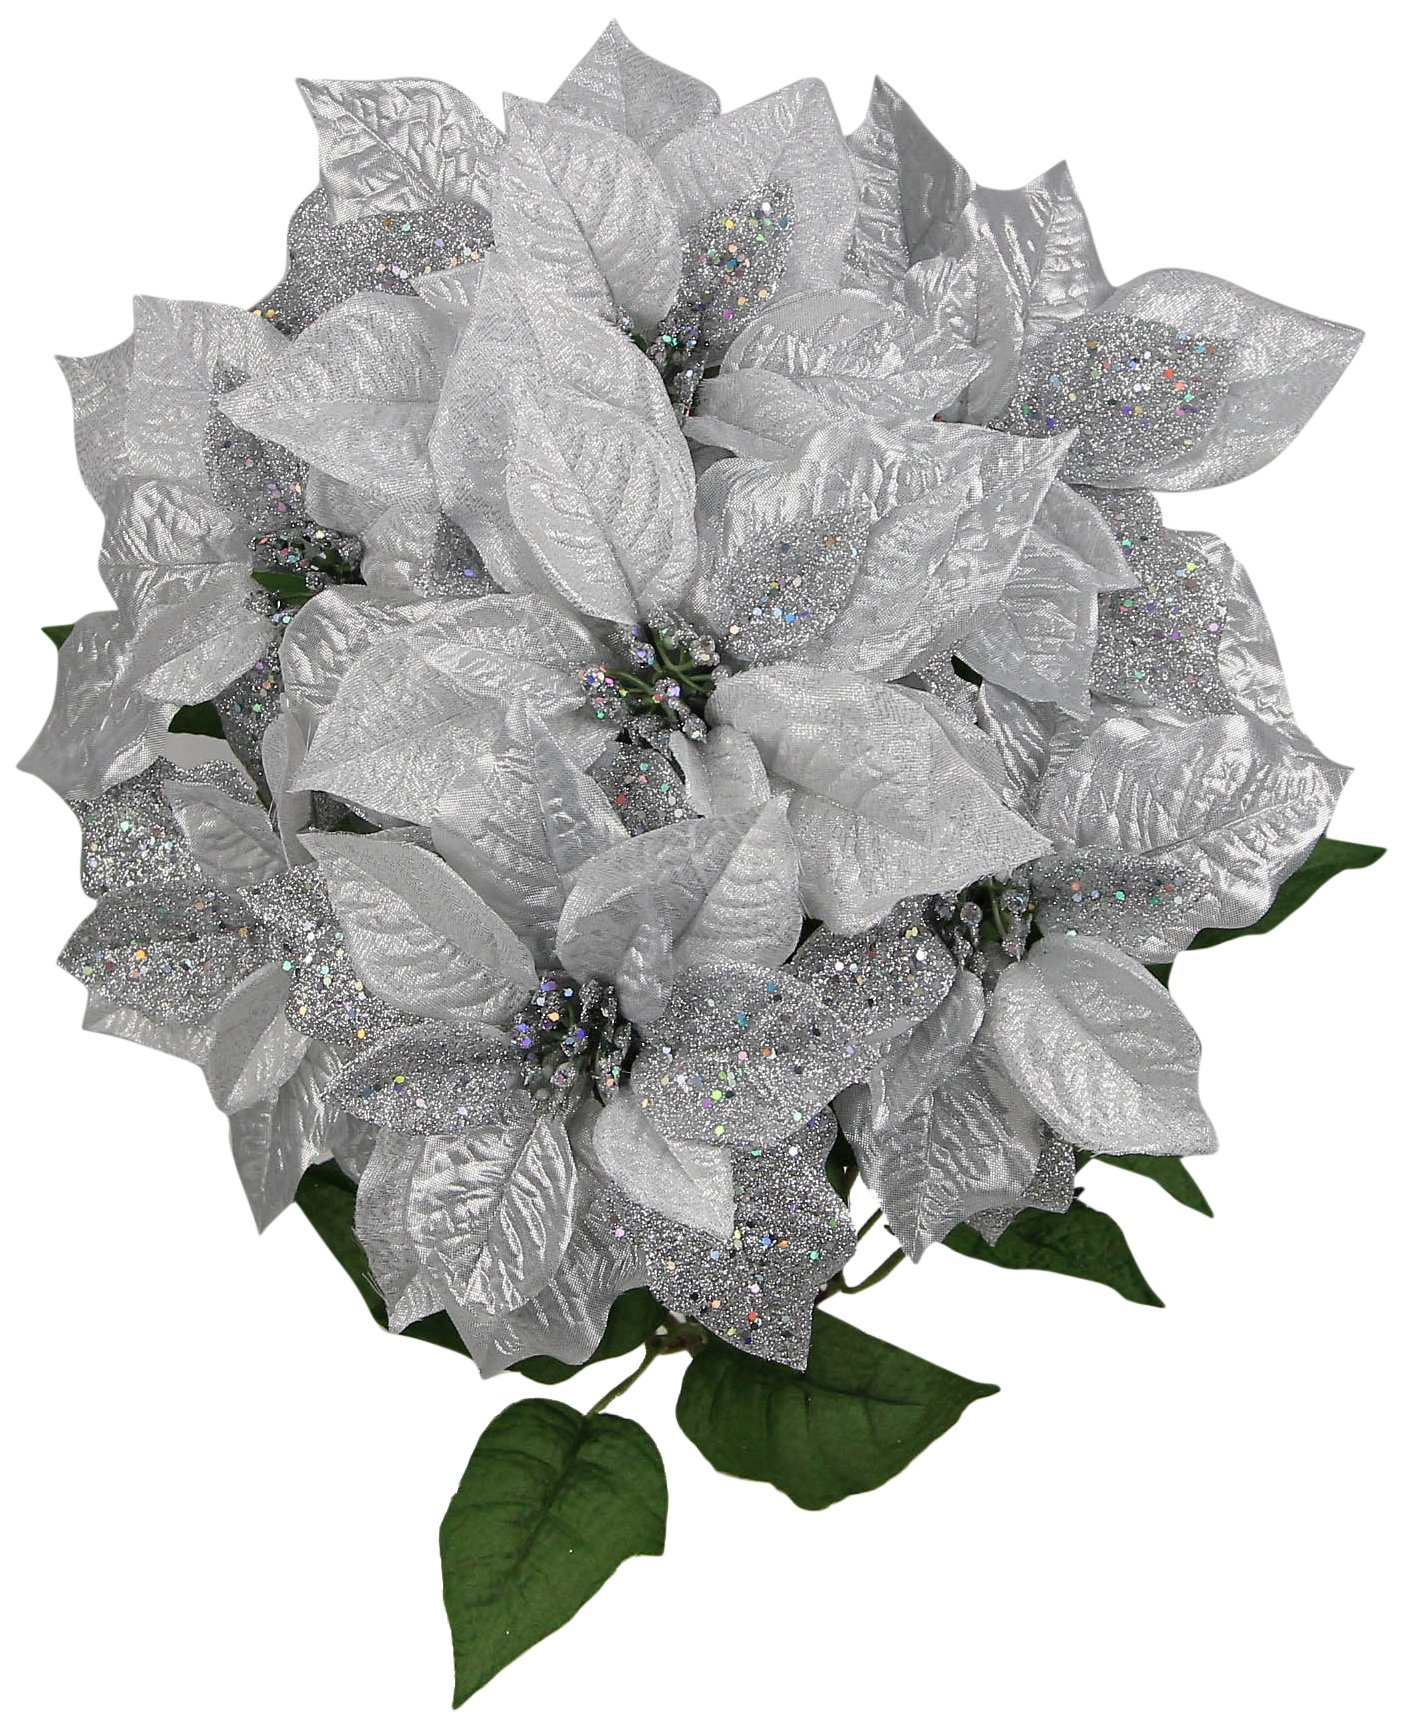 Admired By Nature 7 Stems Faux Poinsettia Sequins Flowers Bush for Home, Office, Hotel and Seasonal Events Arrangement Decoration, Silver